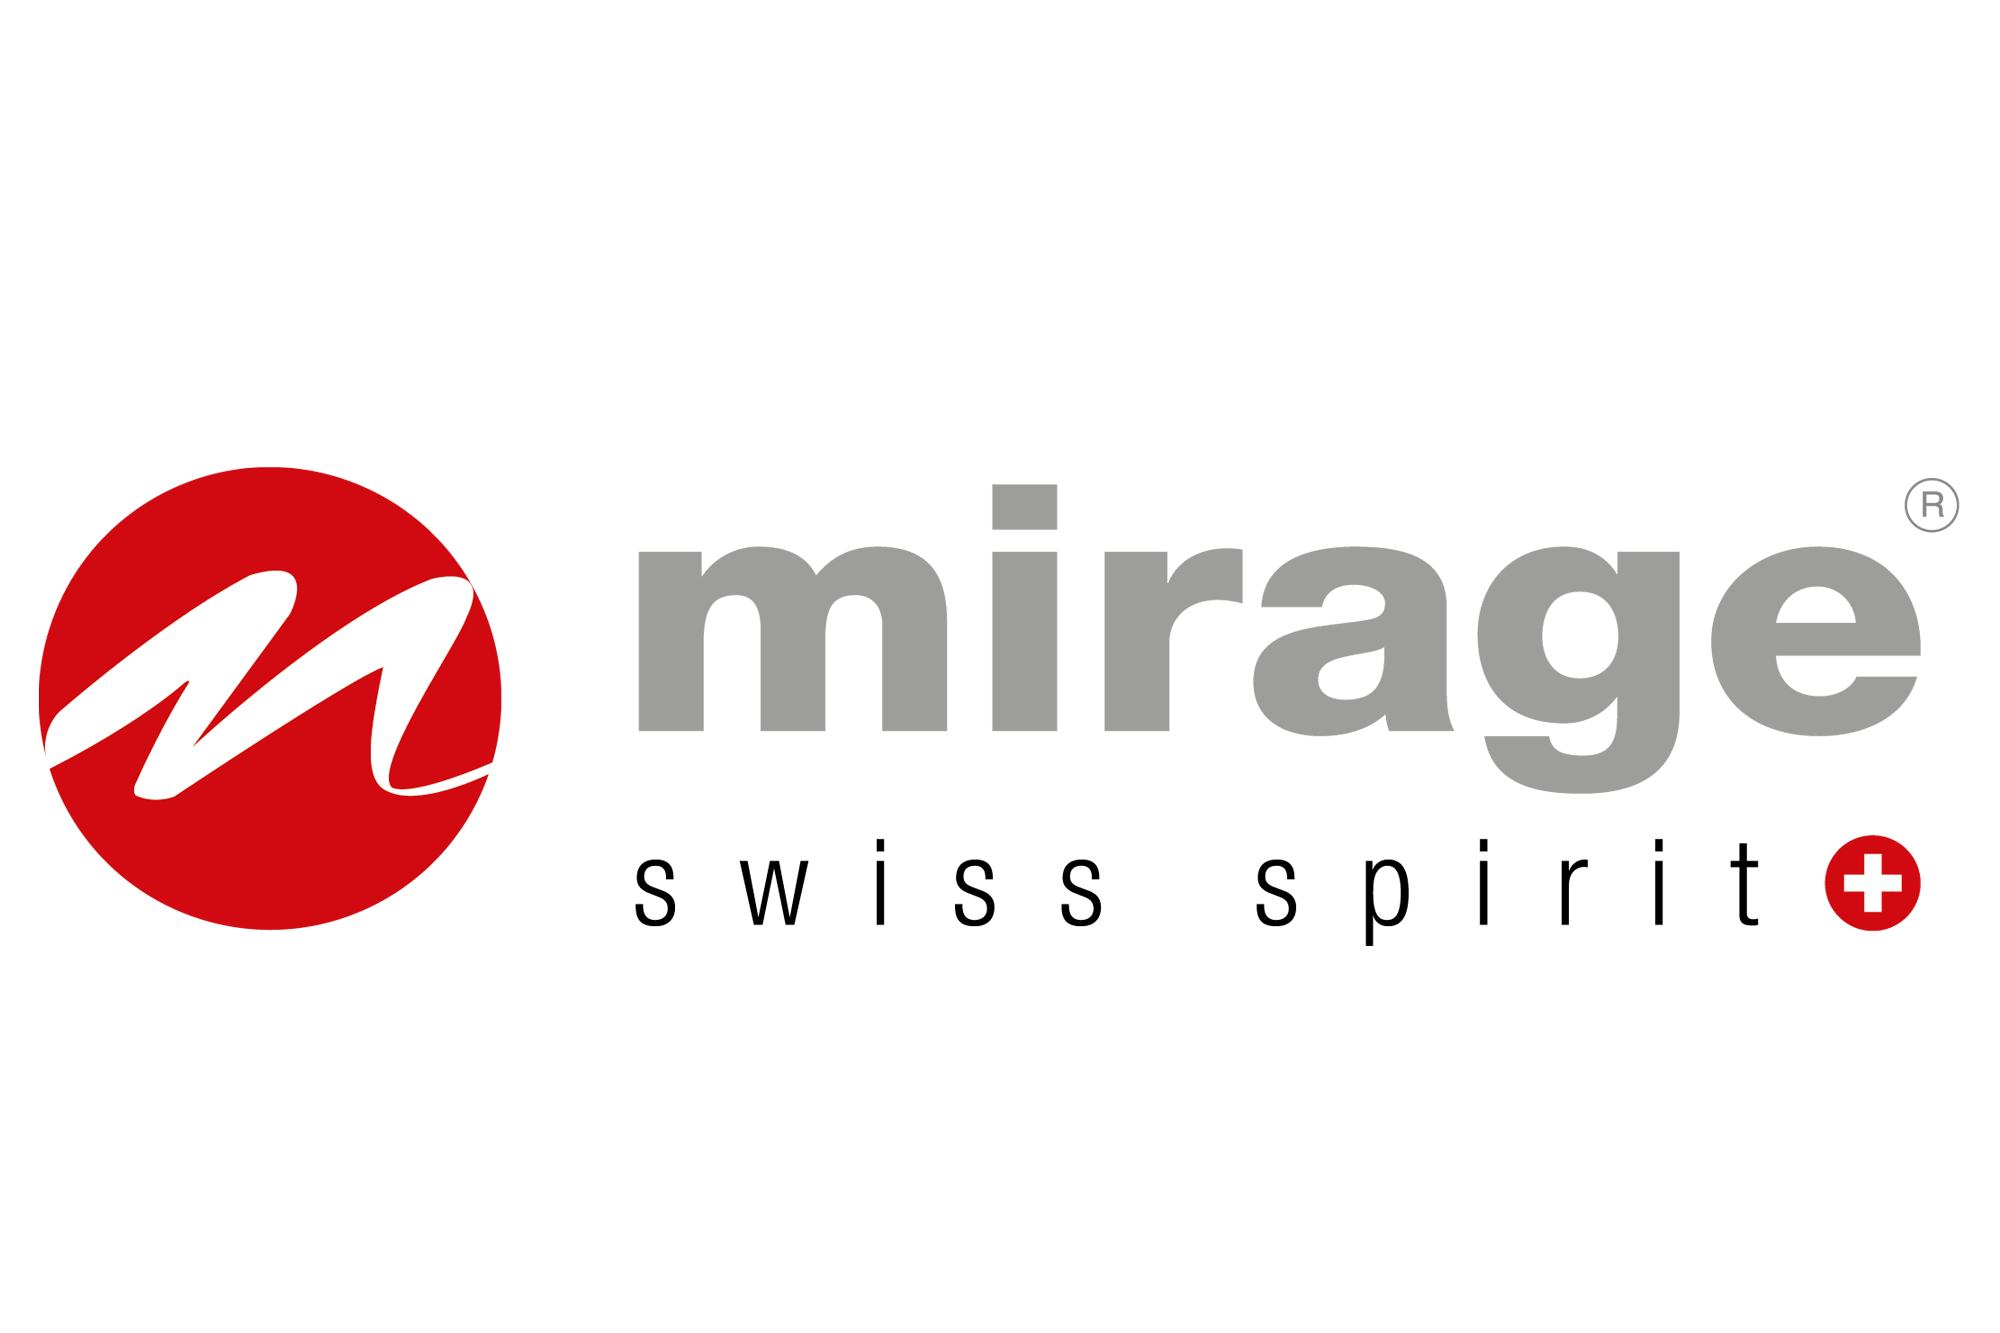 Mirage, Swiss Spirit